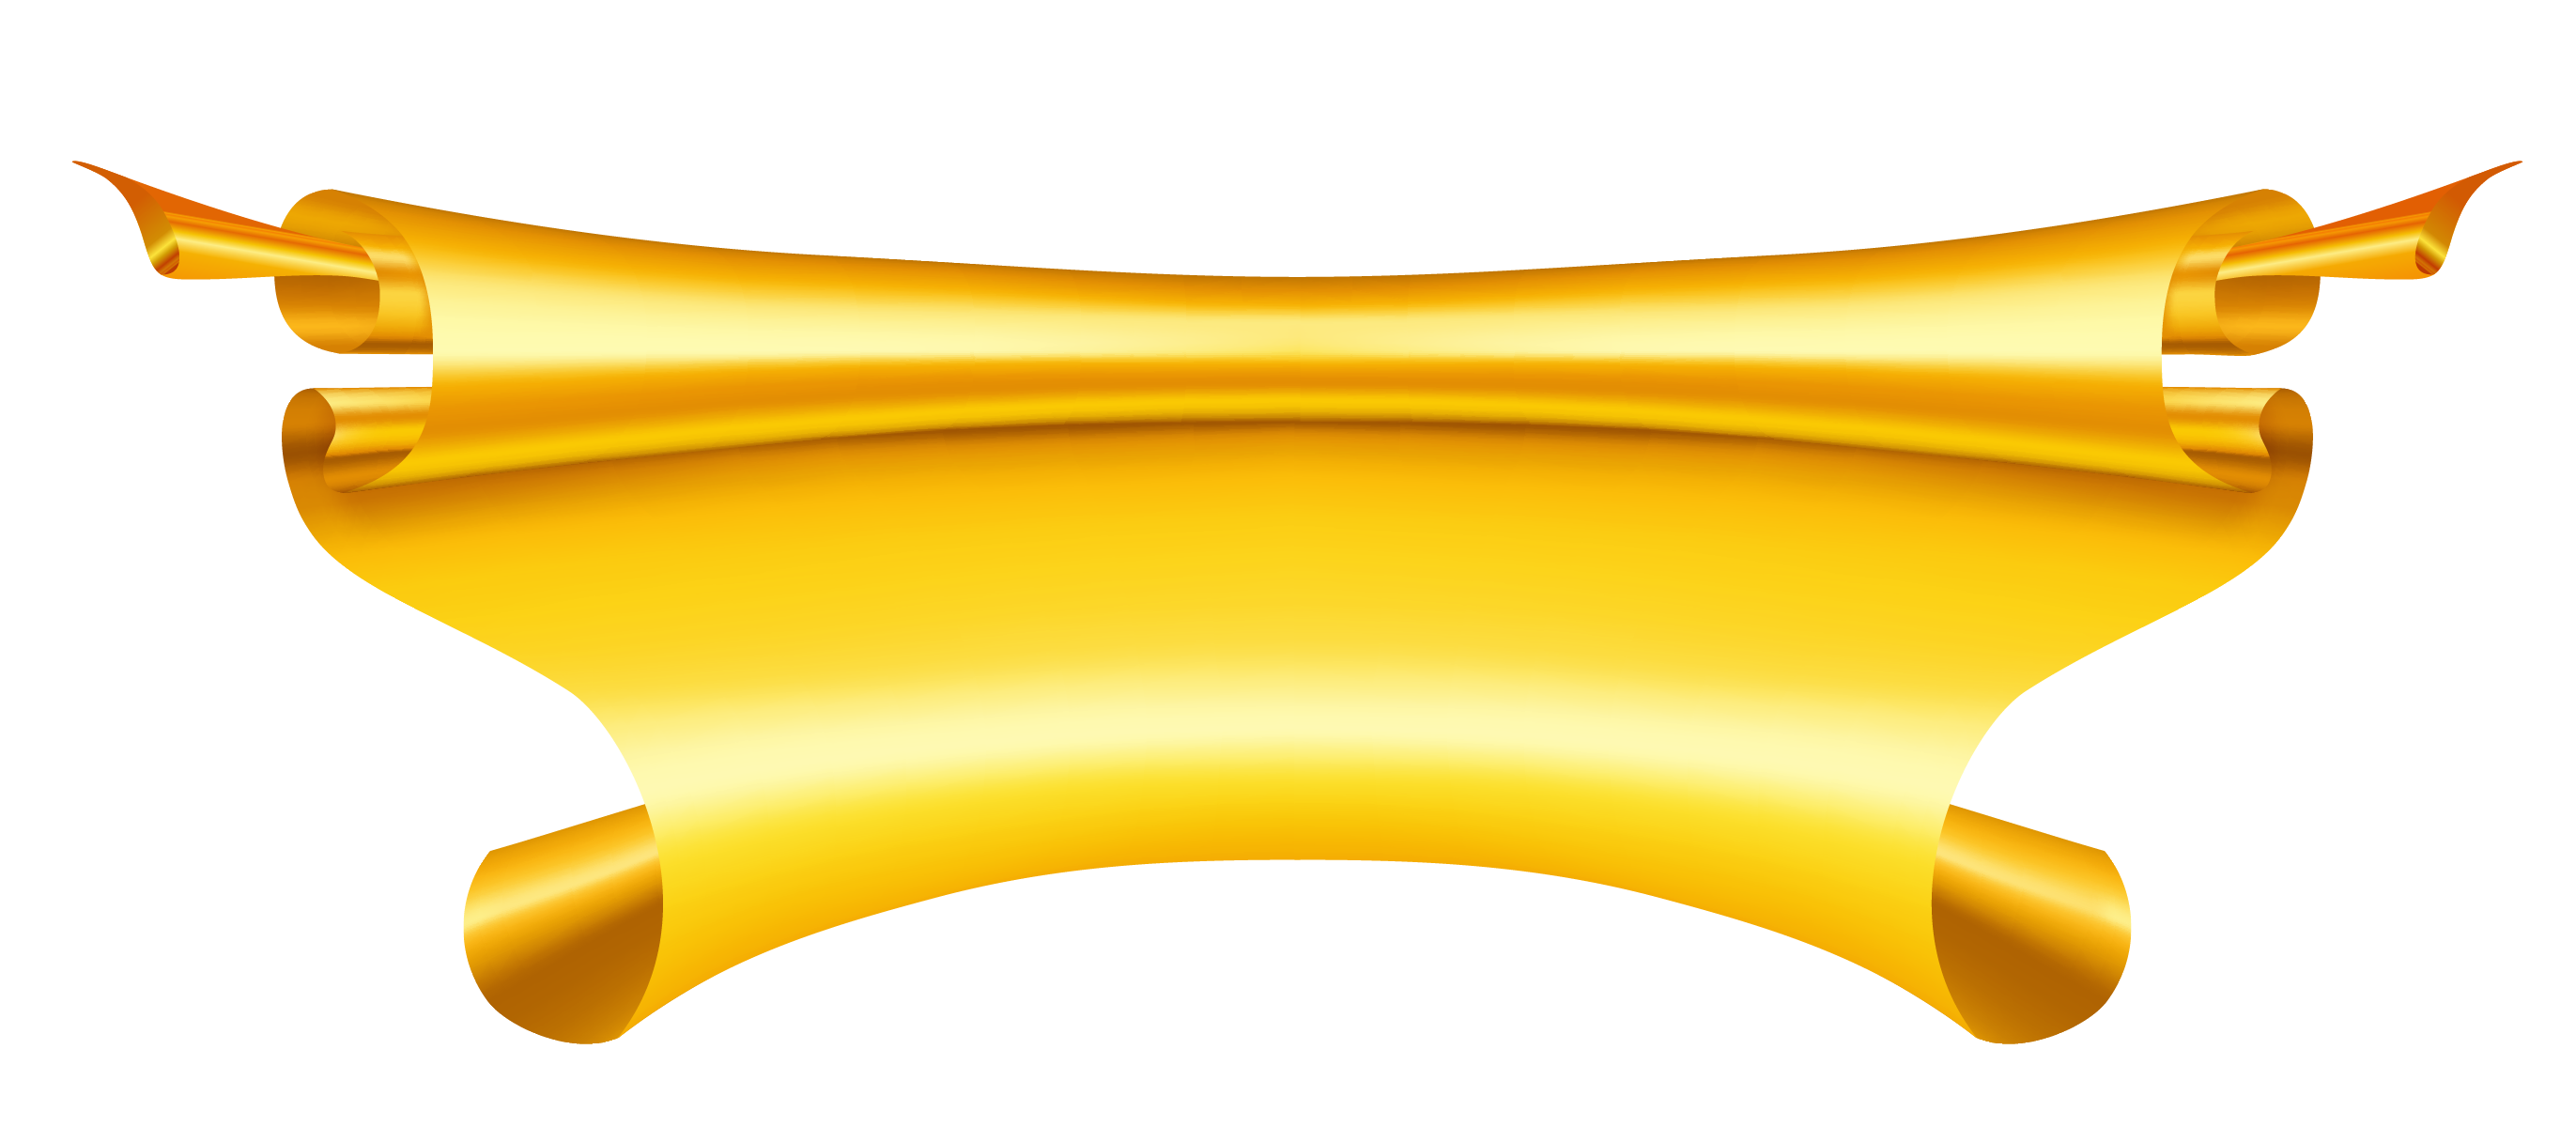 Golden ribbon png. Yellow banner clipart places